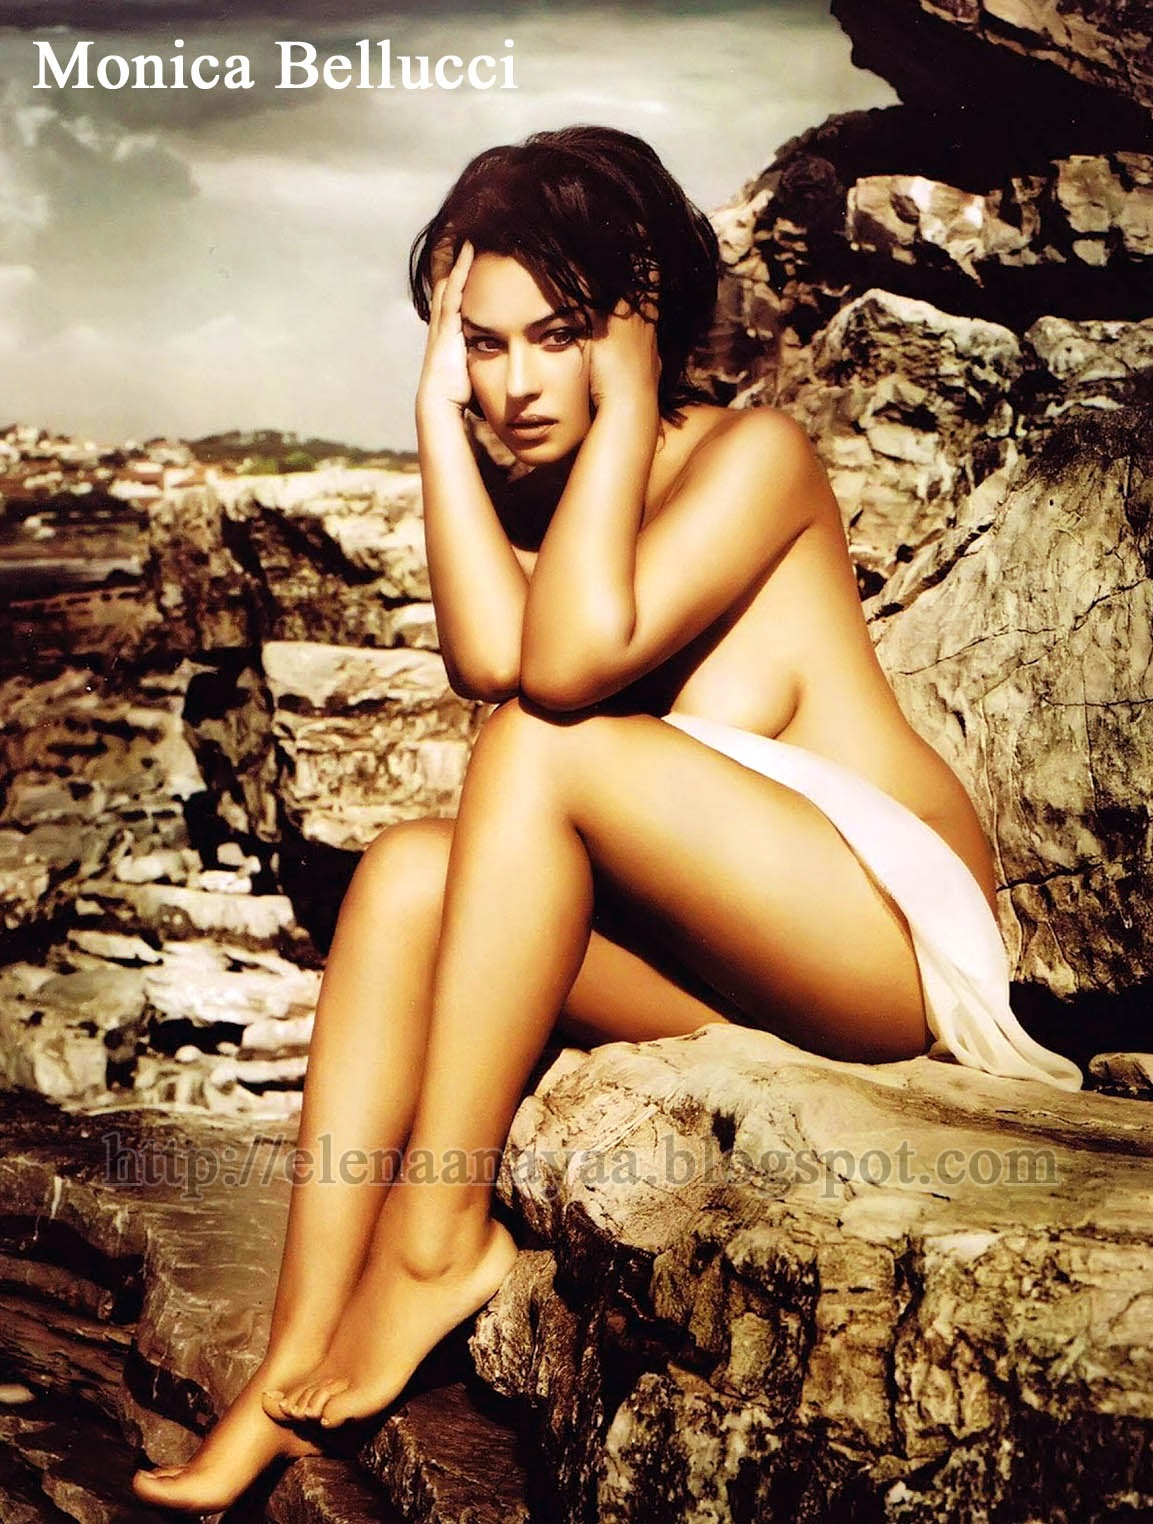 Bare Body And Feet Of Monice Bellucci On Rocks